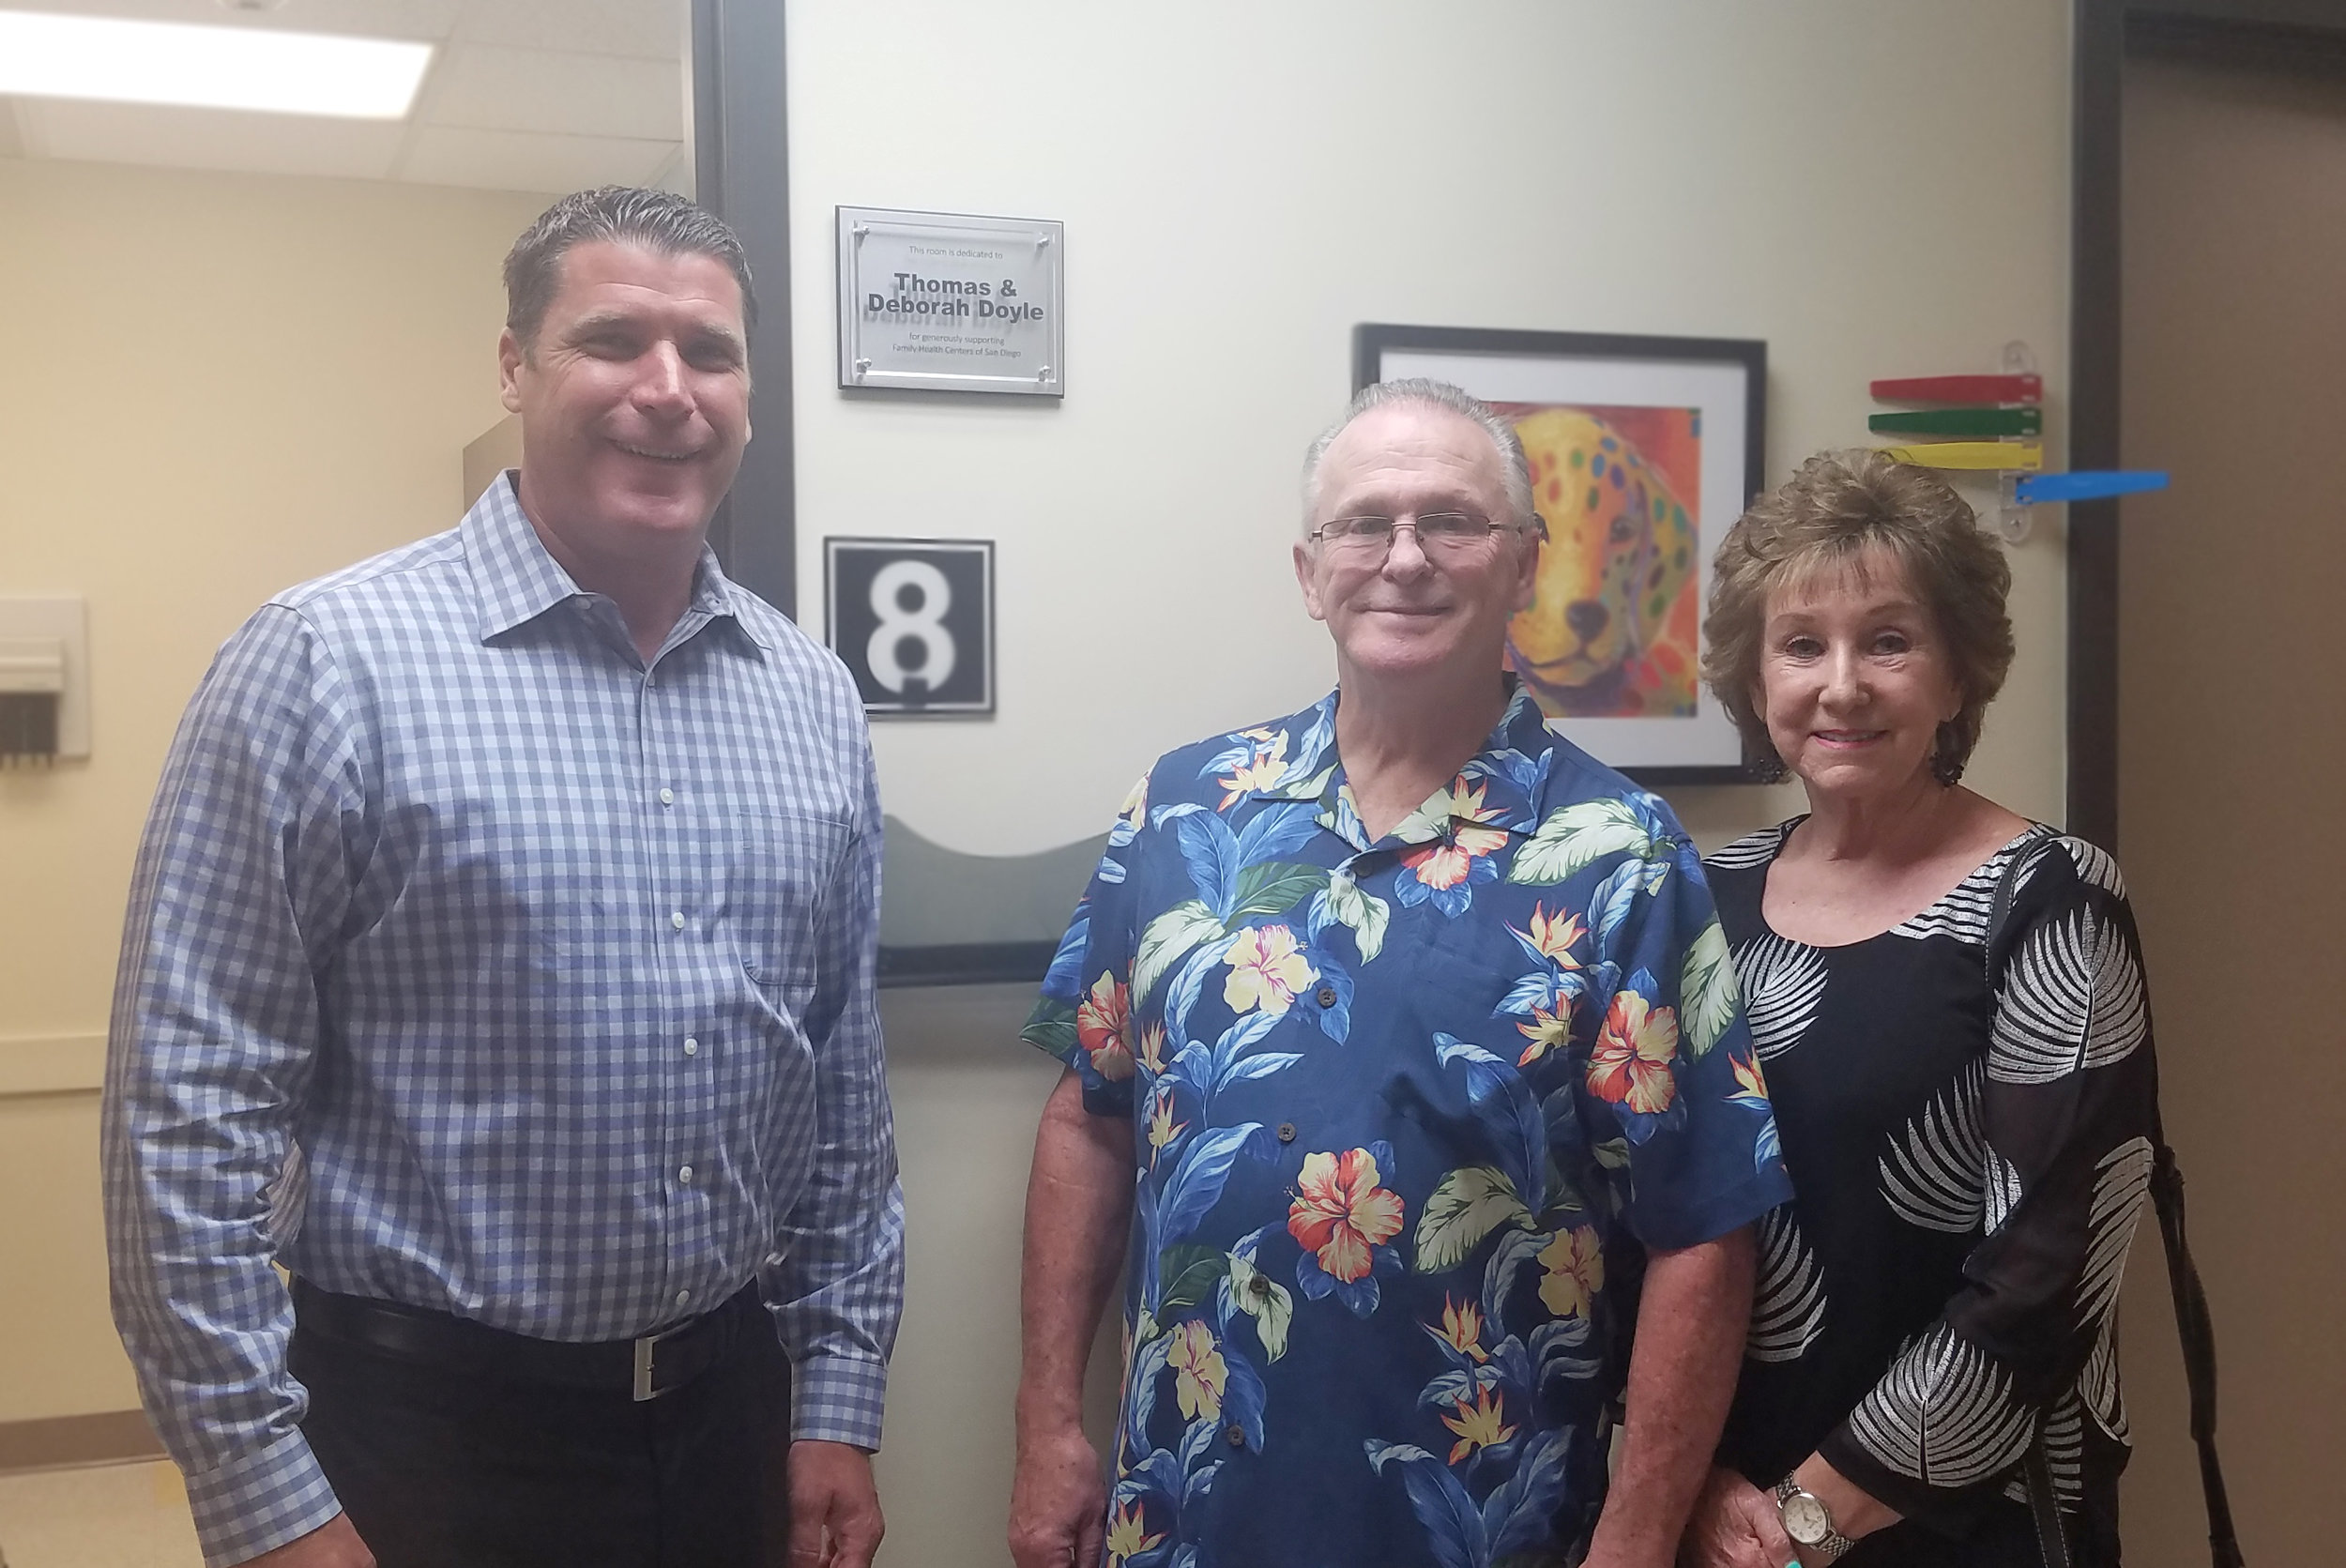 Sam Clayton, Tom & Debby Doyle standing in front of the room plaque.